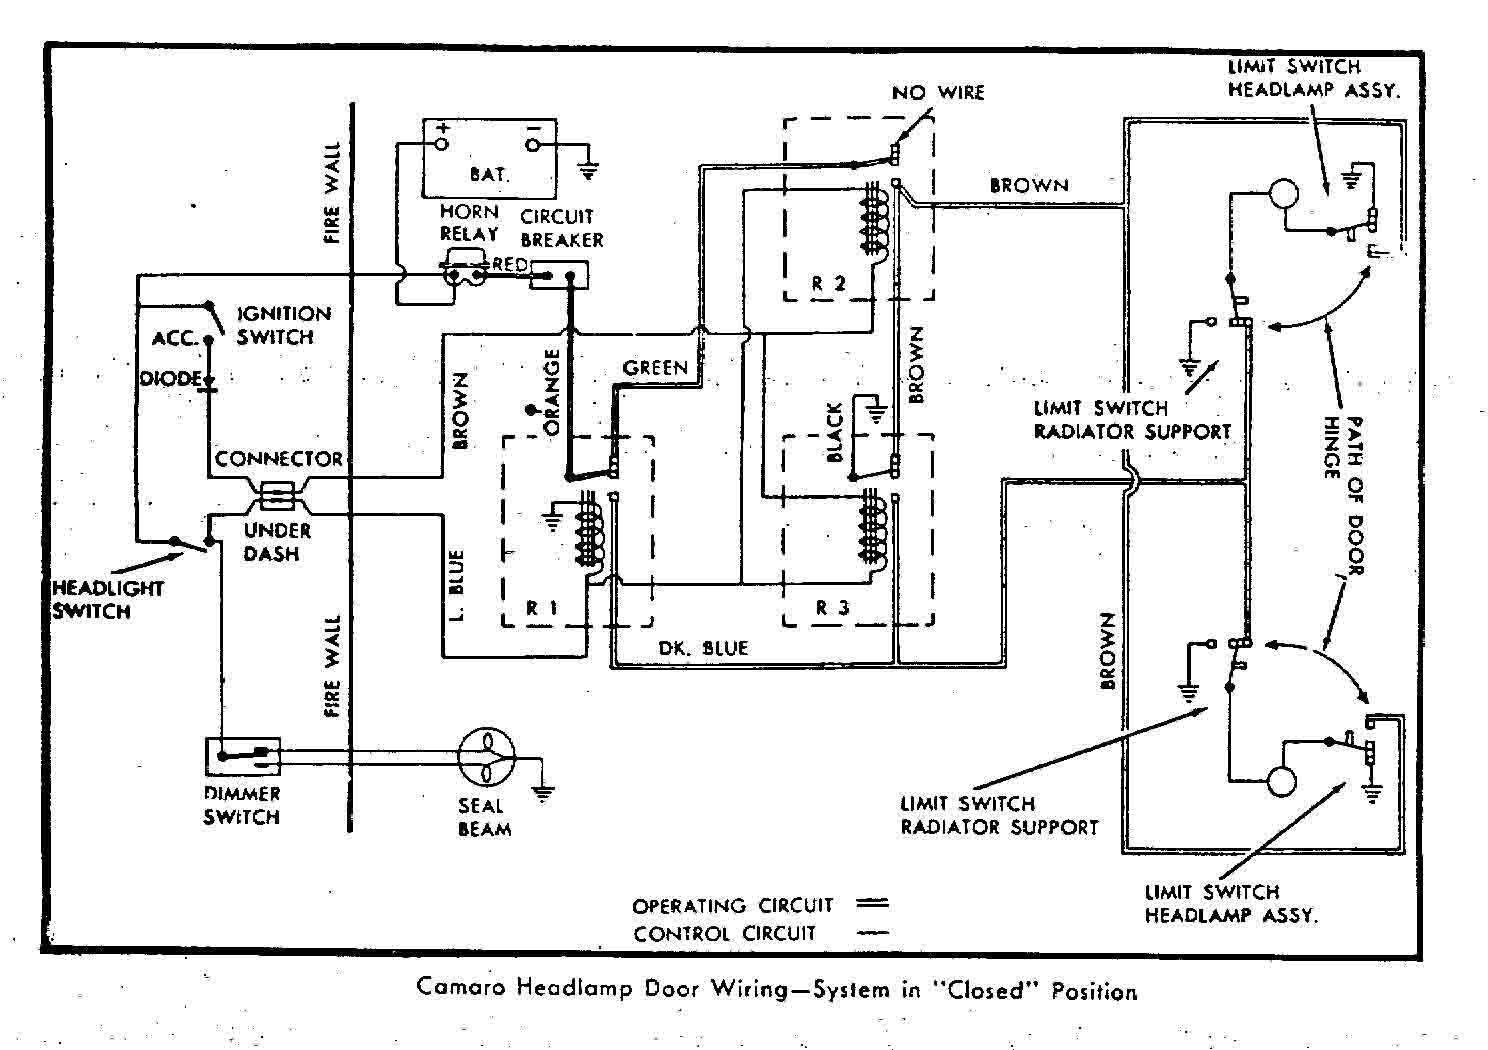 1969 camaro ac wiring diagram wiring diagram1967 camaro tach wiring diagram wiring diagram best data 1969 camaro ac